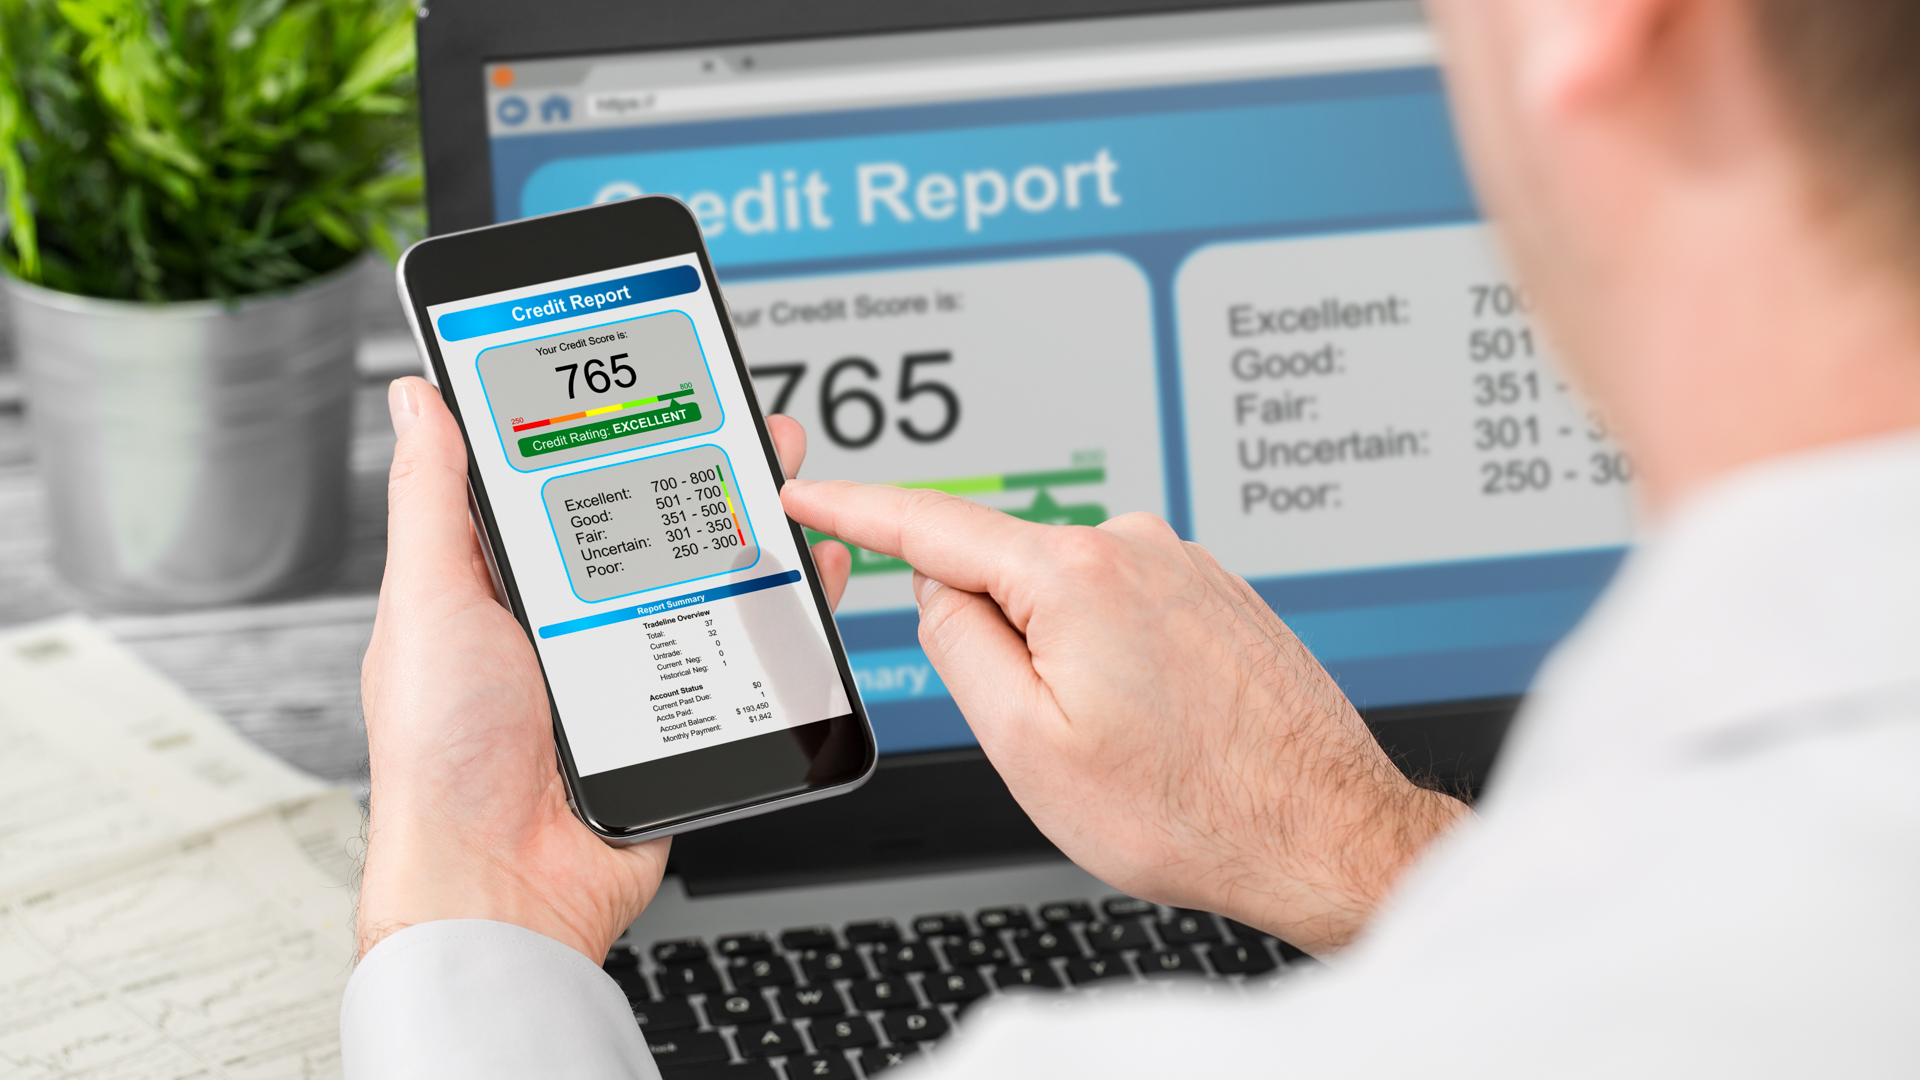 Credit Rating Services in Hyderabad | Trayee Capital | Credit Rating Services in Hyderabad,Credit Rating company in Hyderabad,Credit Rating agent in Hyderabad,Credit Rating Service in hyderabad,Credit Rating Services in karimnagar, - GLK1621